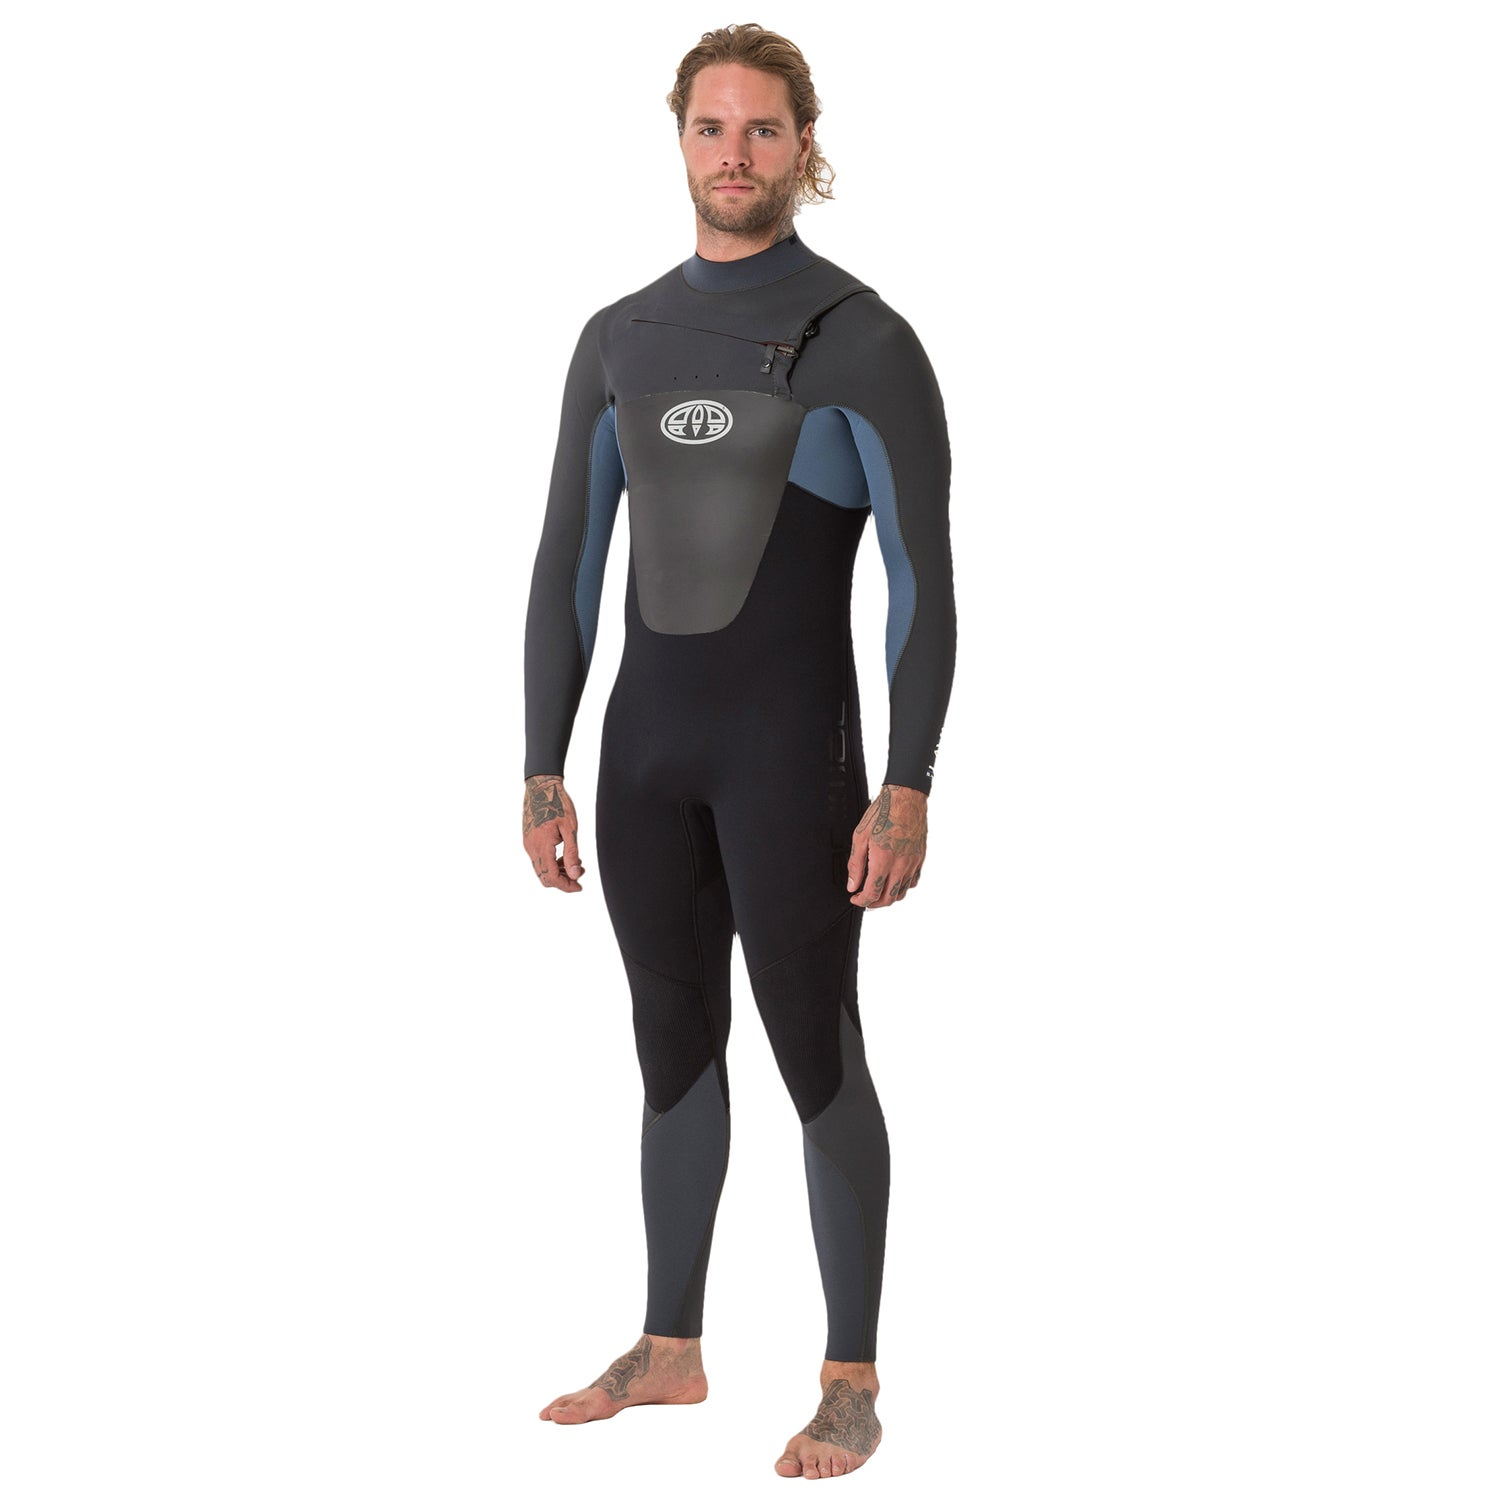 8dc5d252d07 Animal Lava 5 4 3mm Chest Zip Mens Surf Gear Wetsuit - Pewter Blue ...